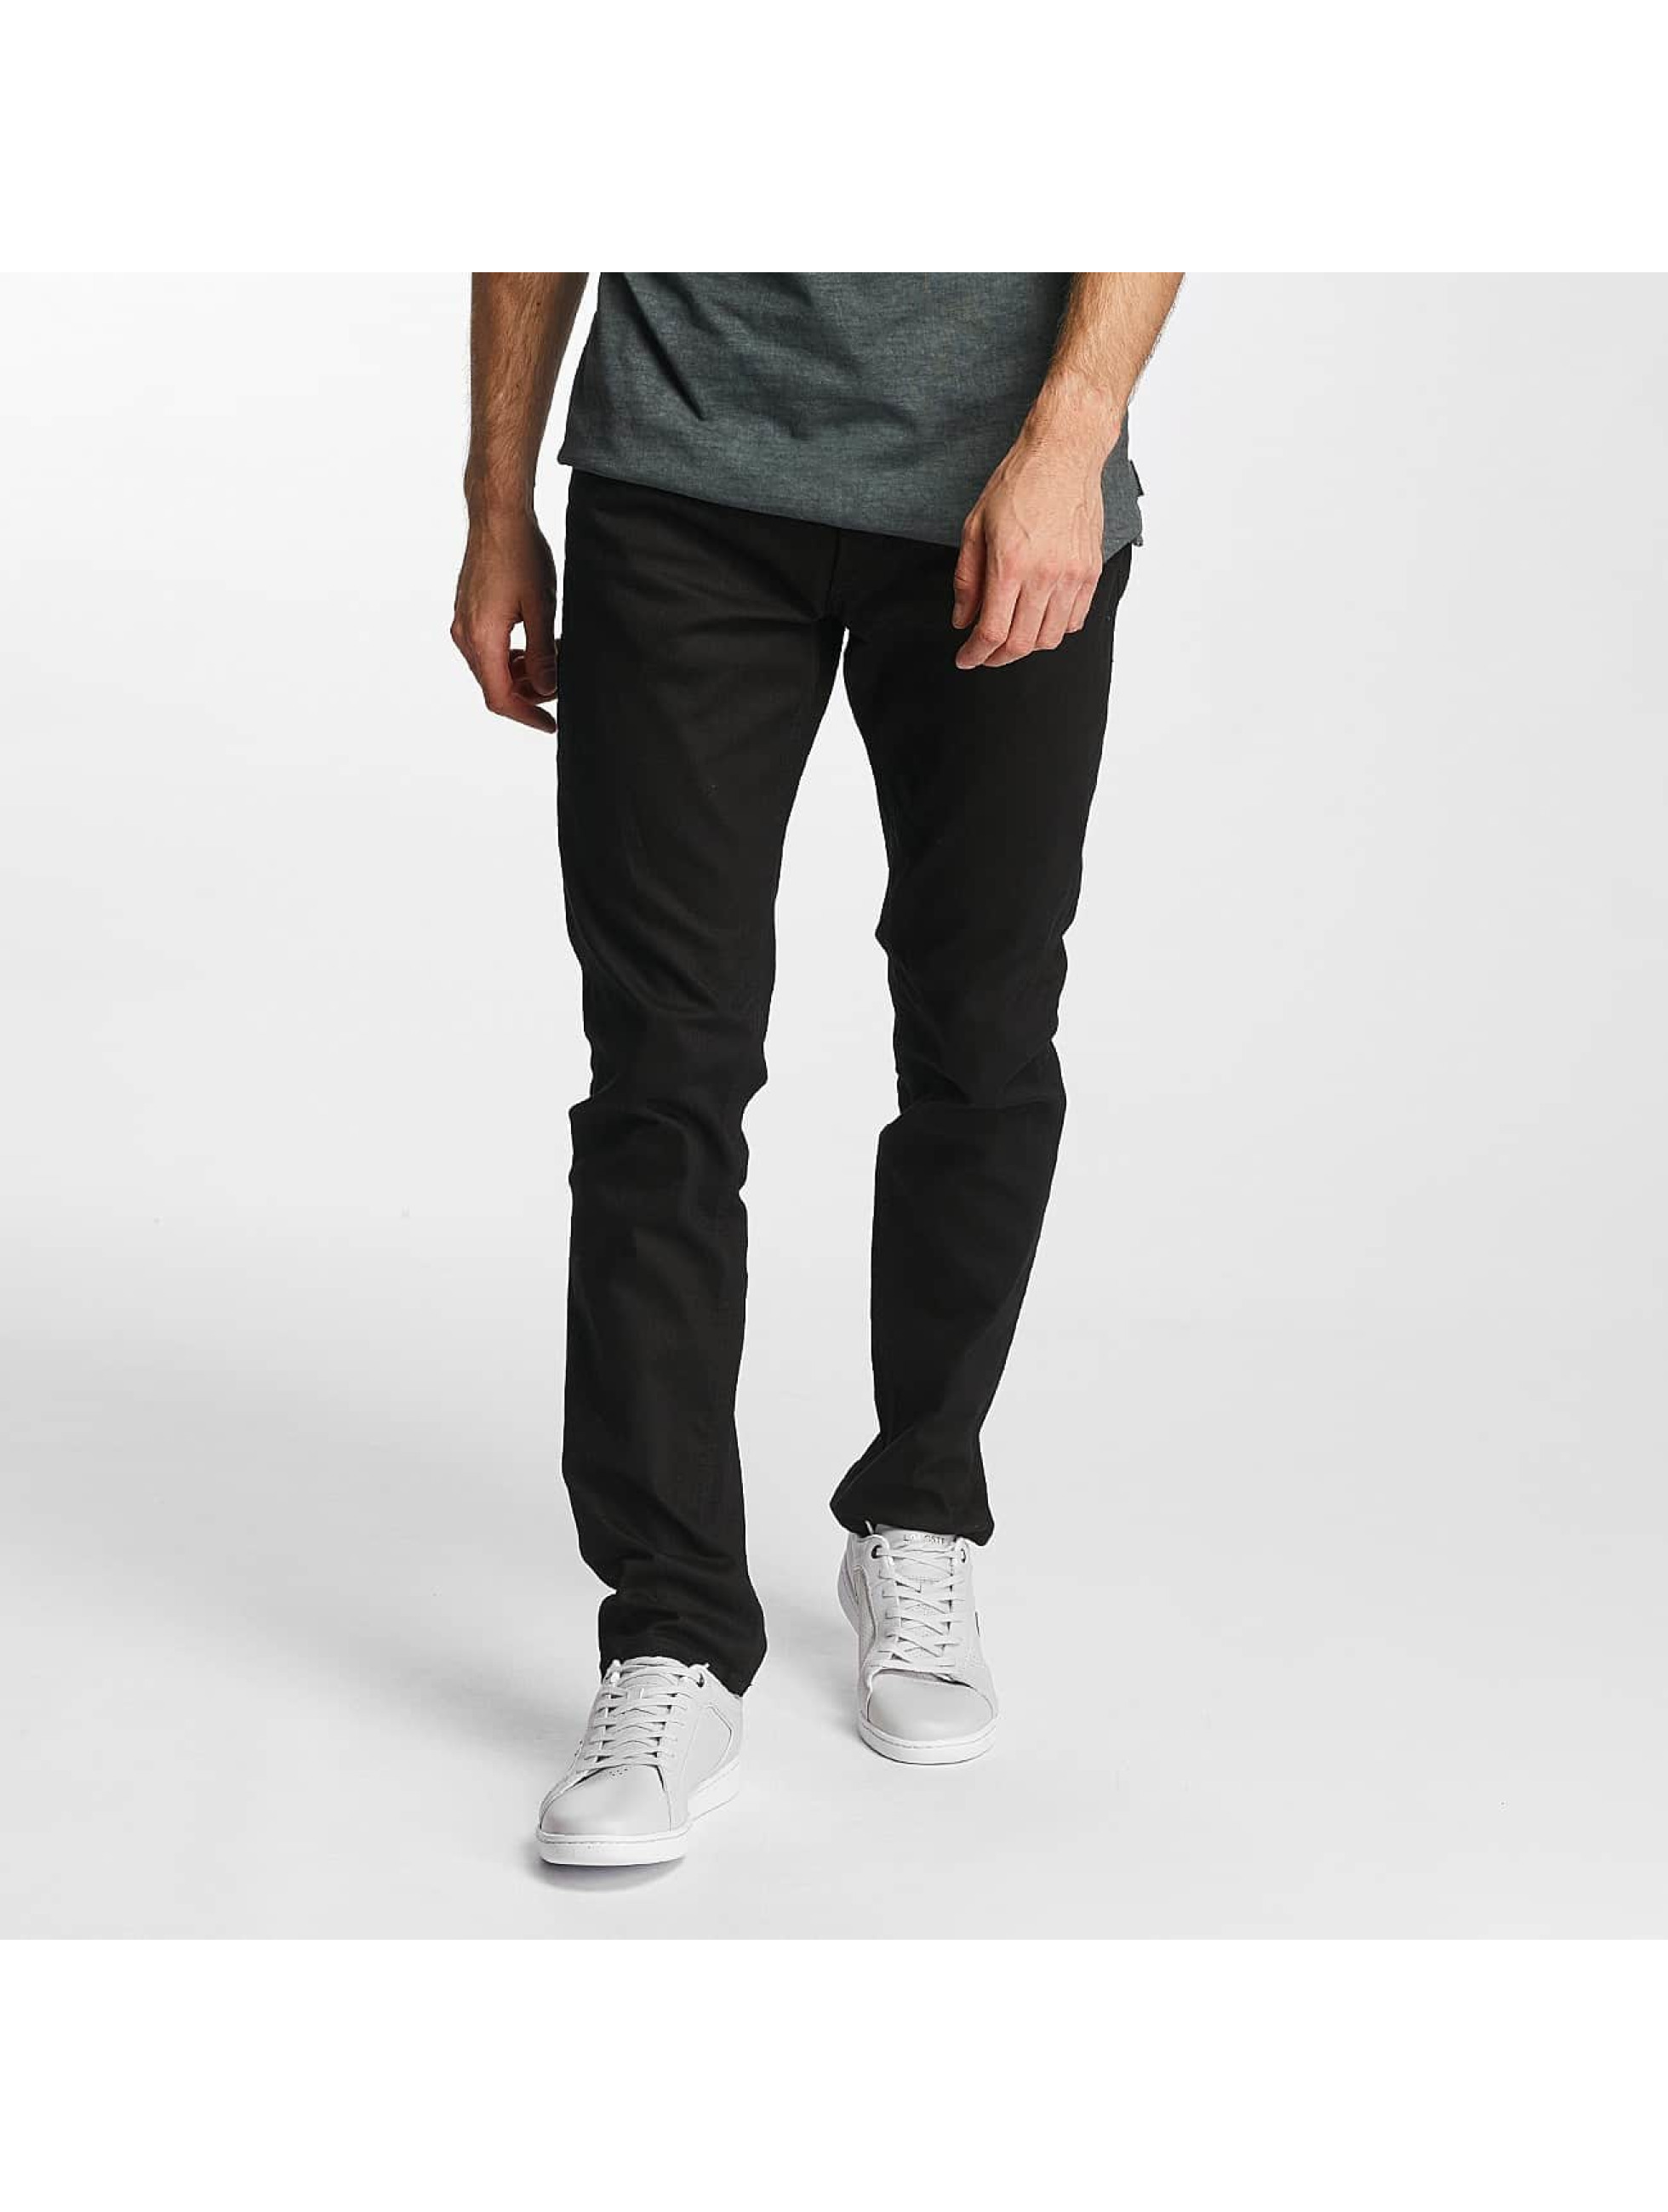 Jack & Jones Slim Fit Jeans jjiTim jjOriginal schwarz